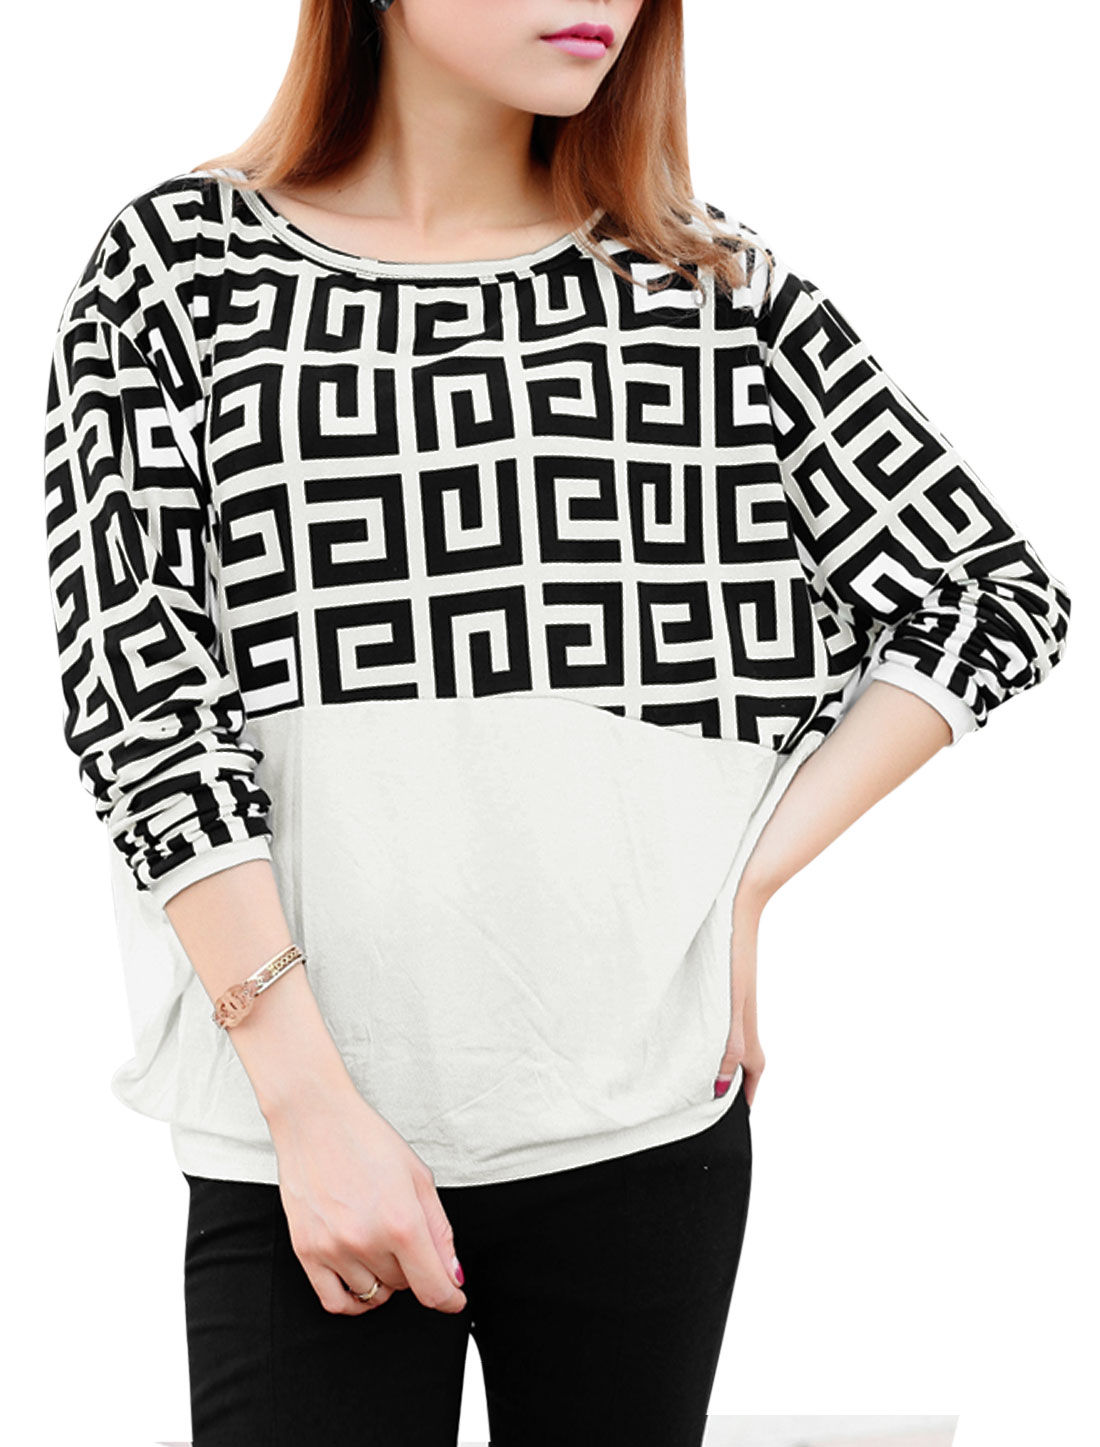 Ladies Round Neck Long Bat Sleeve Geometric Prints Casual Top White Black XS